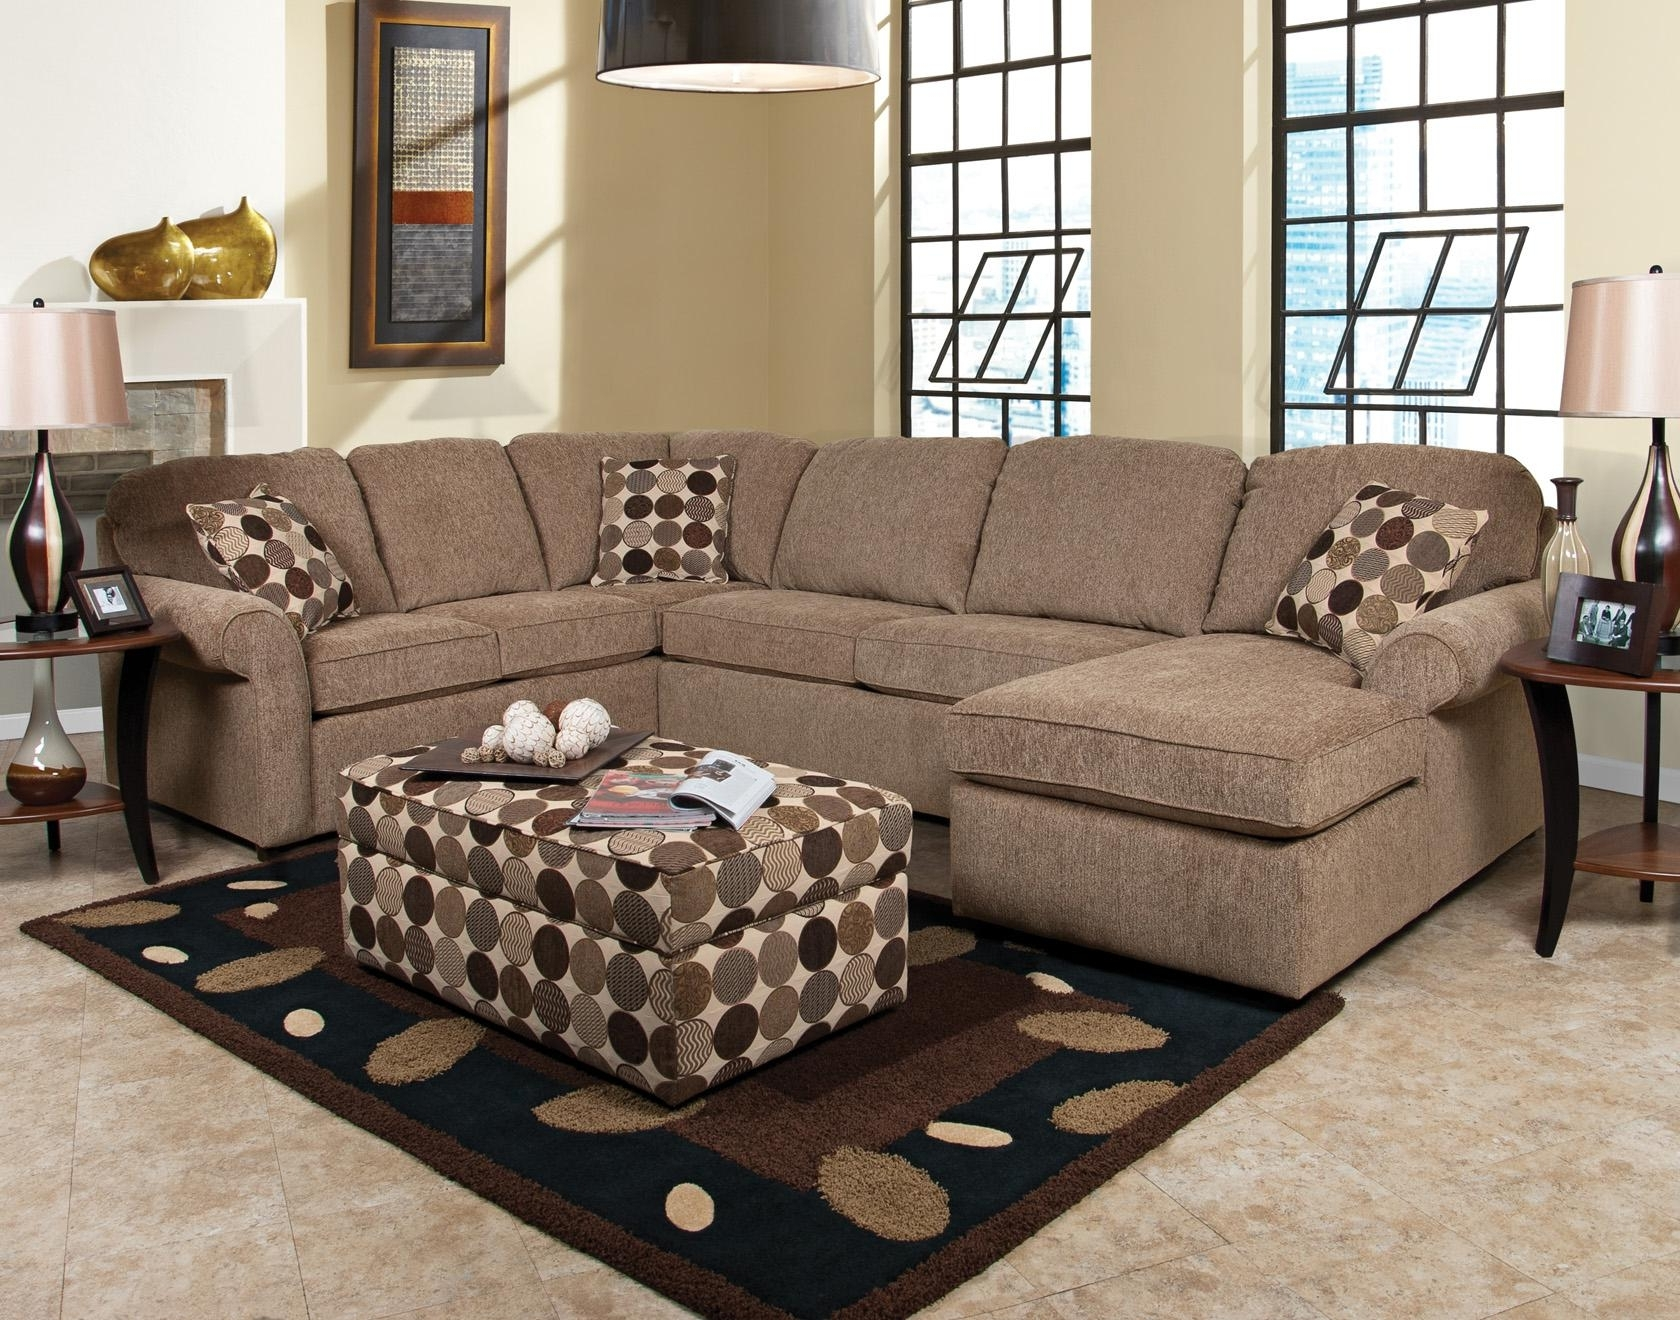 Westrich Furniture Within England Sectional Sofas (View 5 of 20)